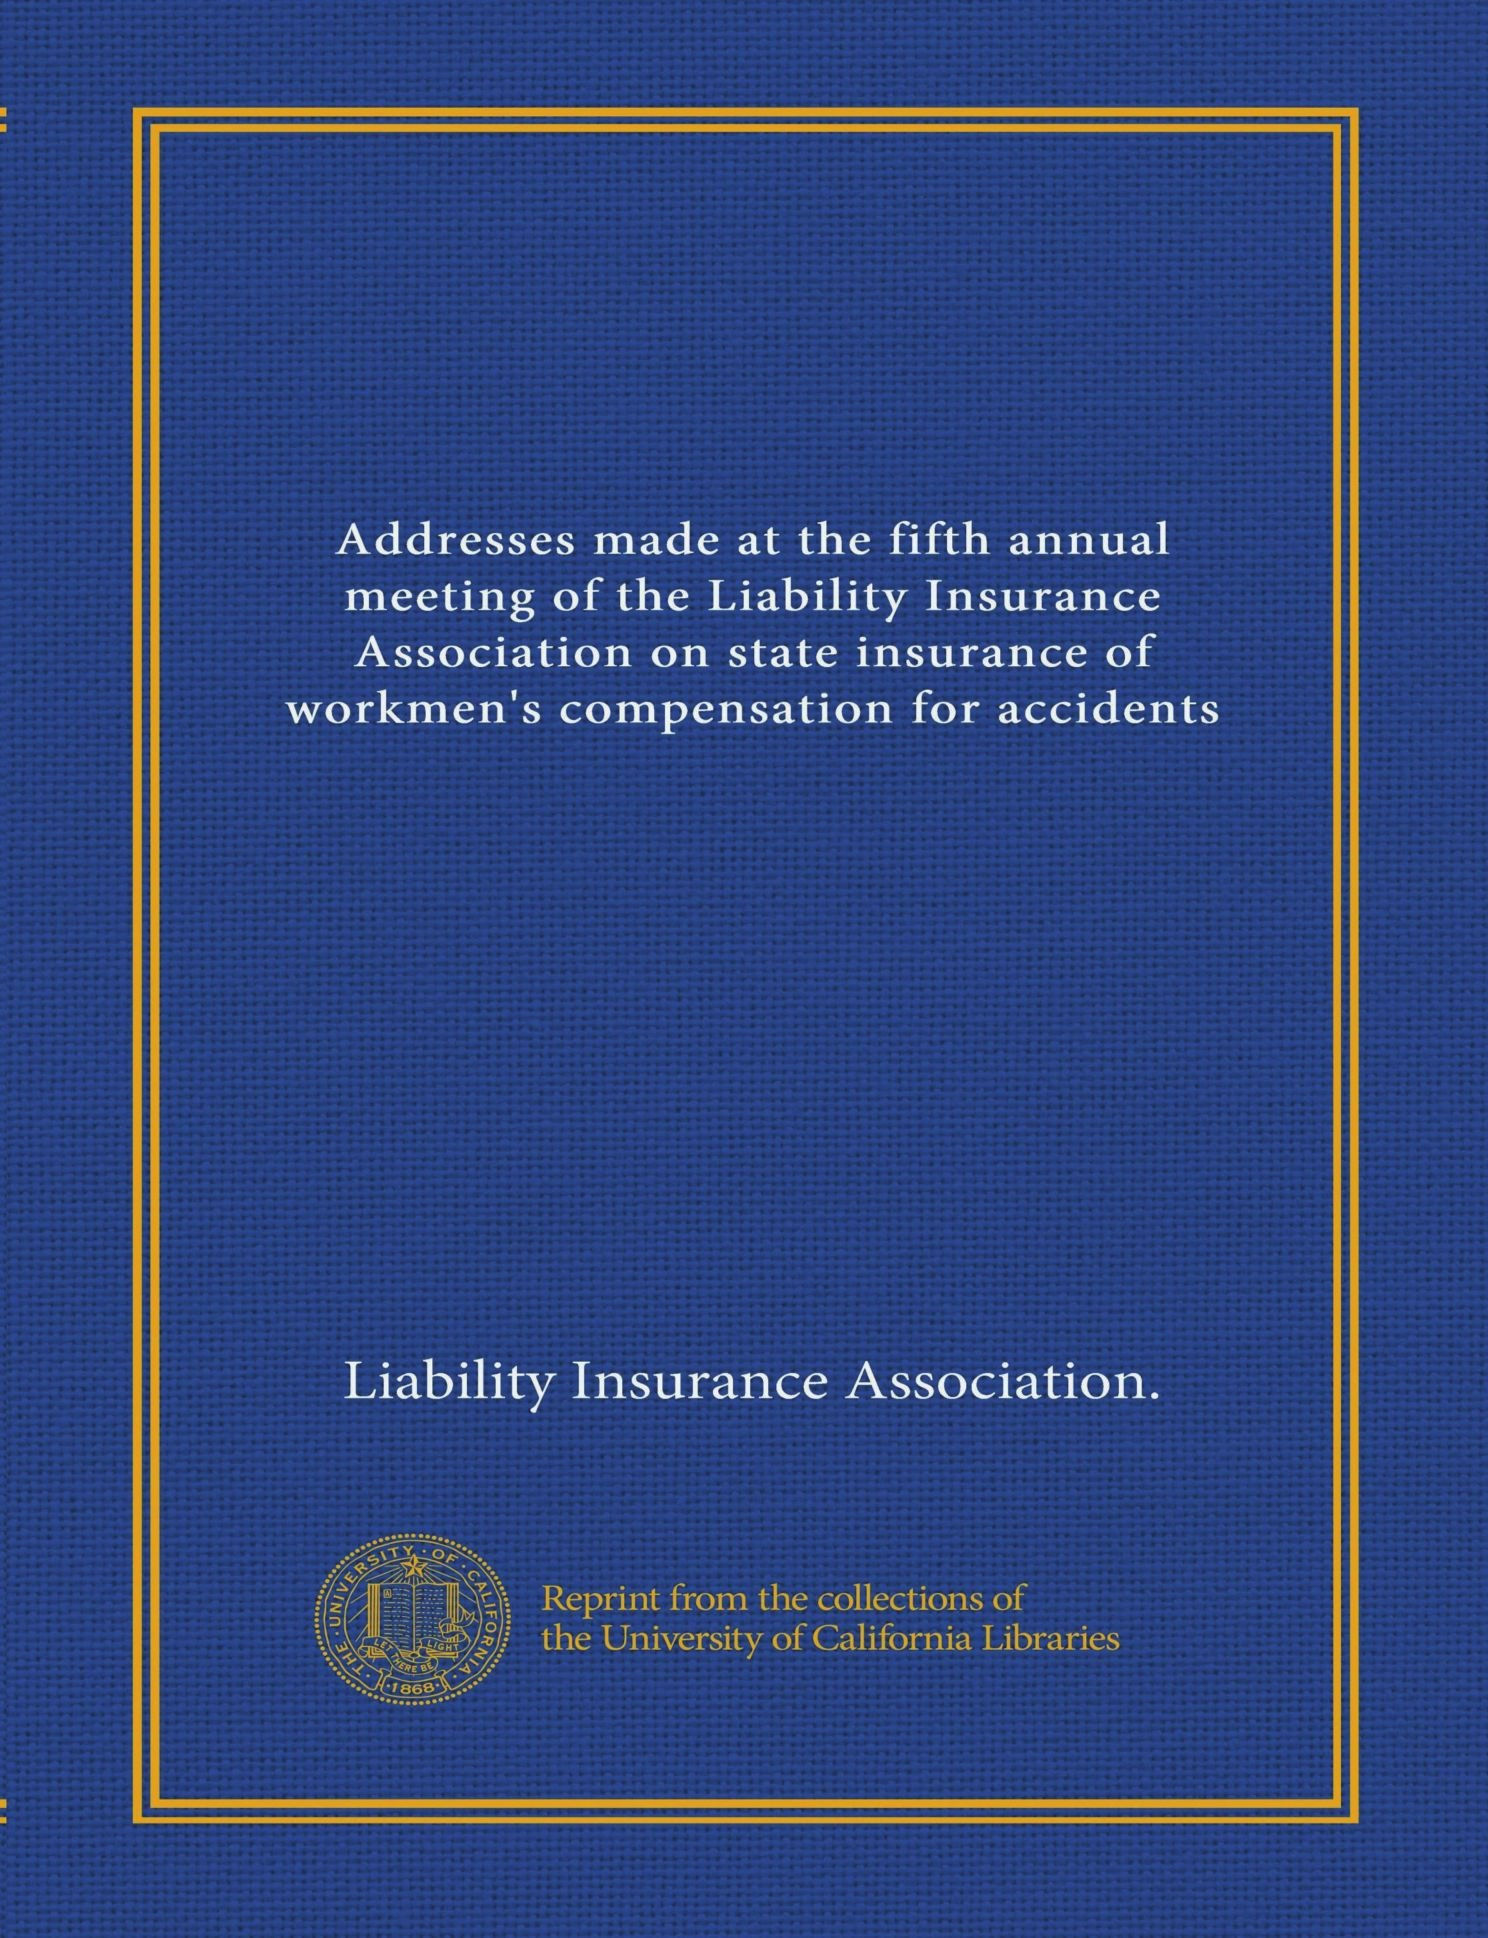 Addresses made at the fifth annual meeting of the Liability Insurance Association on state insurance of workmen's compensation for accidents